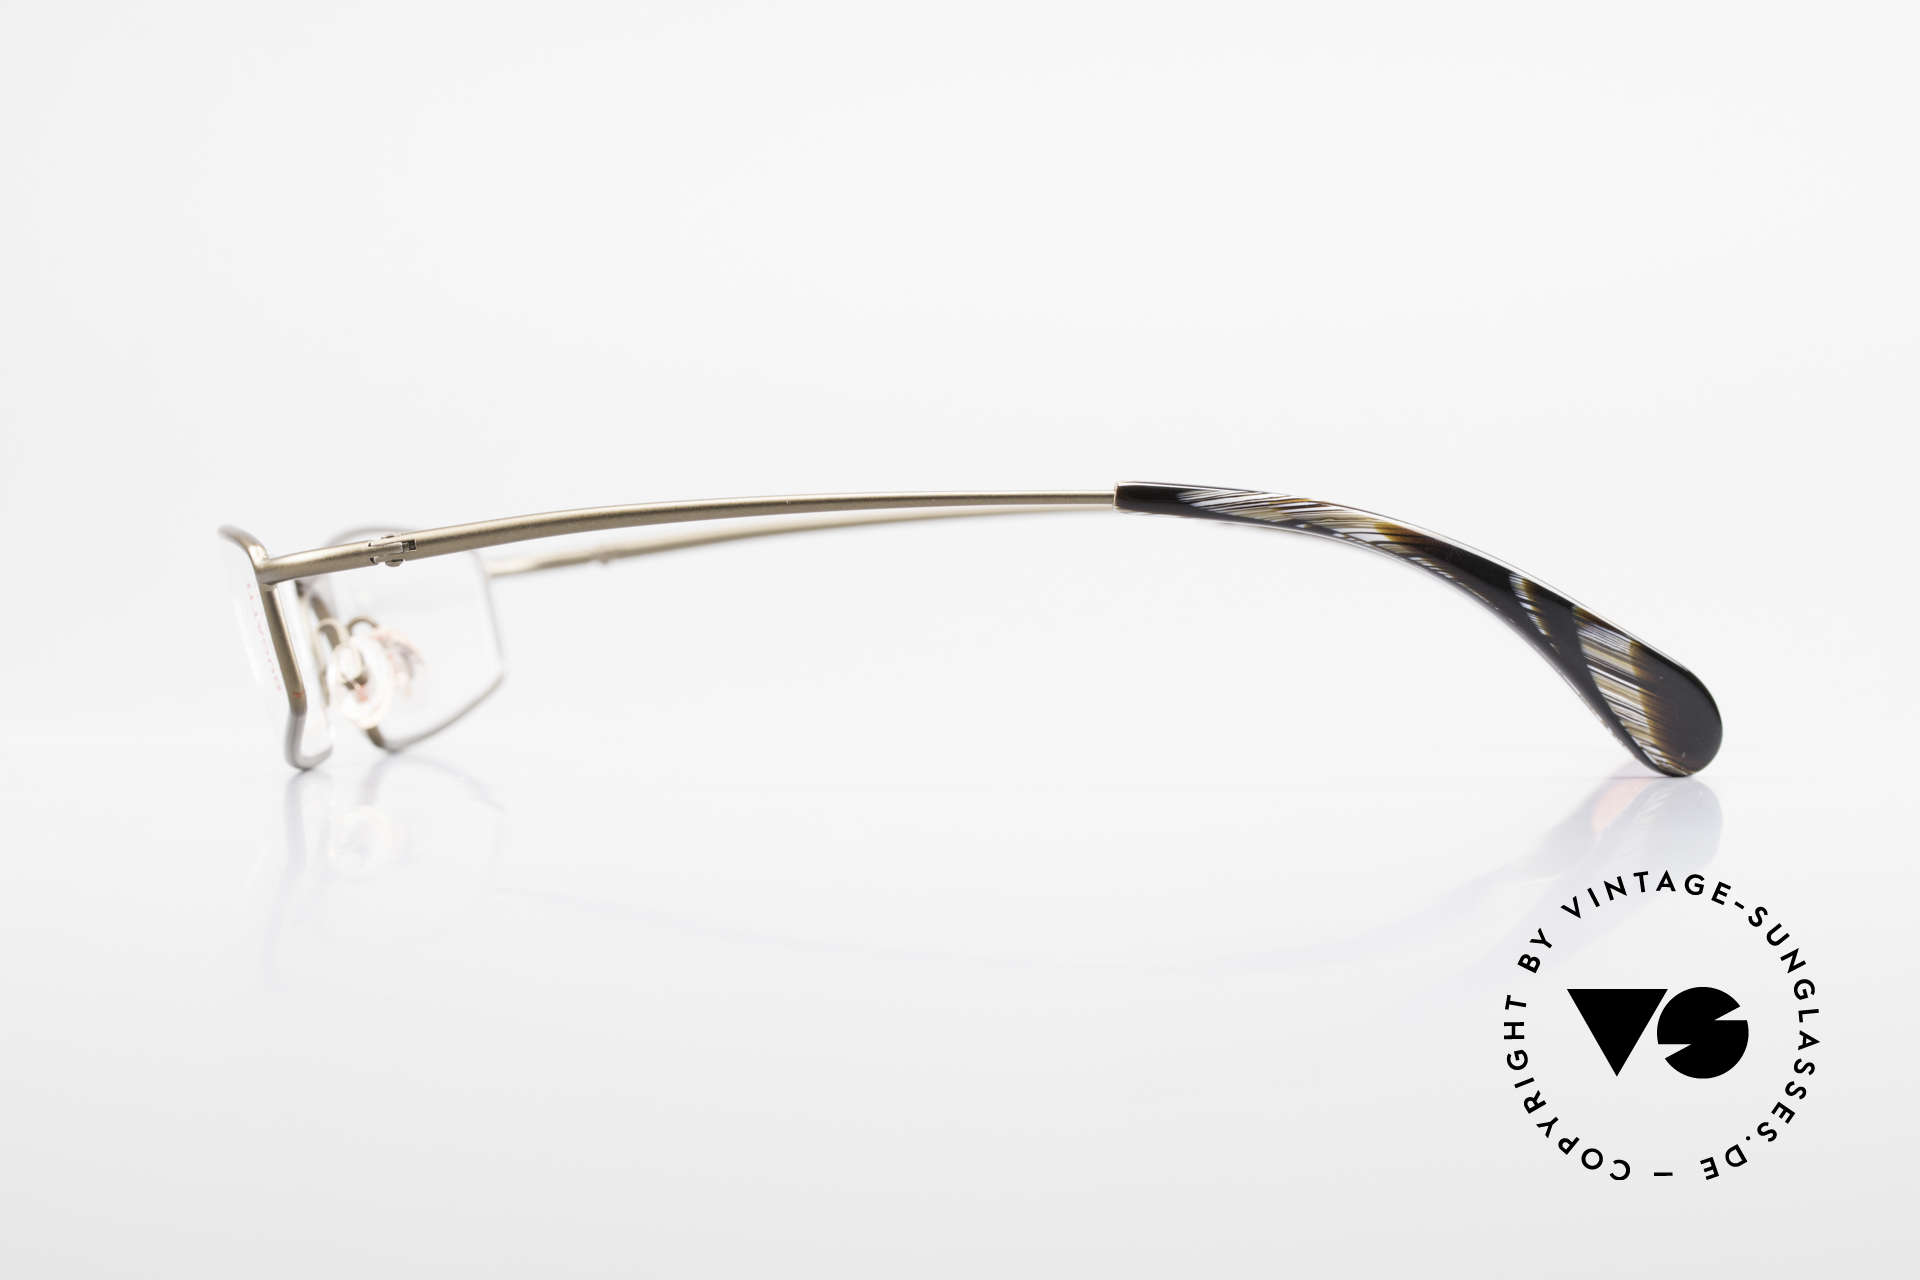 Bugatti 204 Odotype Limited Luxury Vintage Frame, demo lenses can be replaced with prescriptions, Made for Men